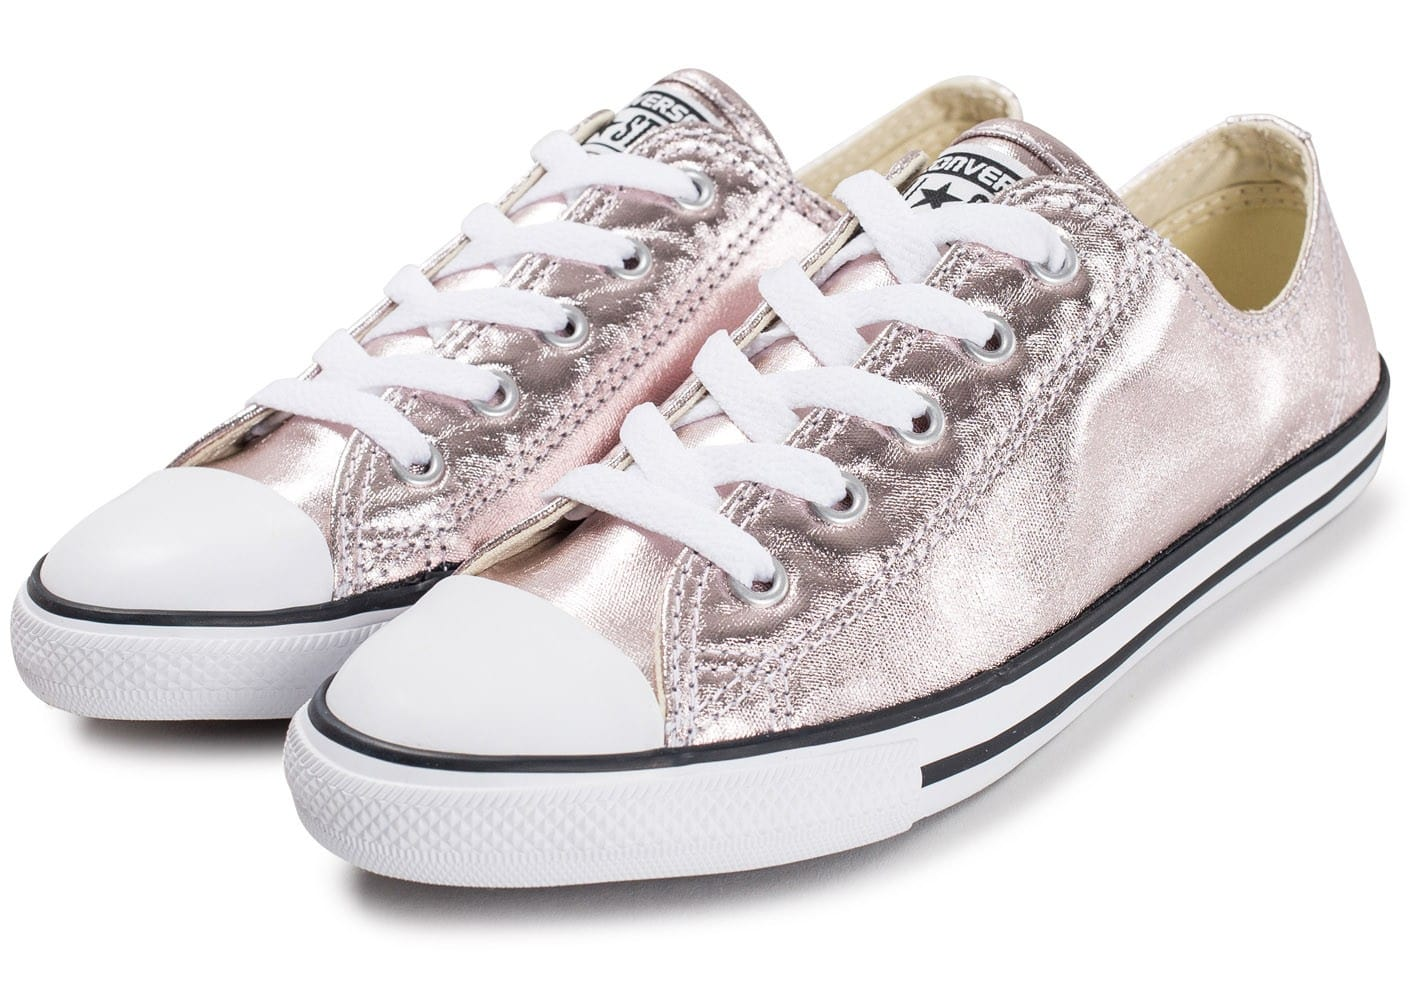 779609c0fb3 ... Chaussures Converse Chuck Taylor All Star Dainty OX Metallic rose vue  intérieure ...